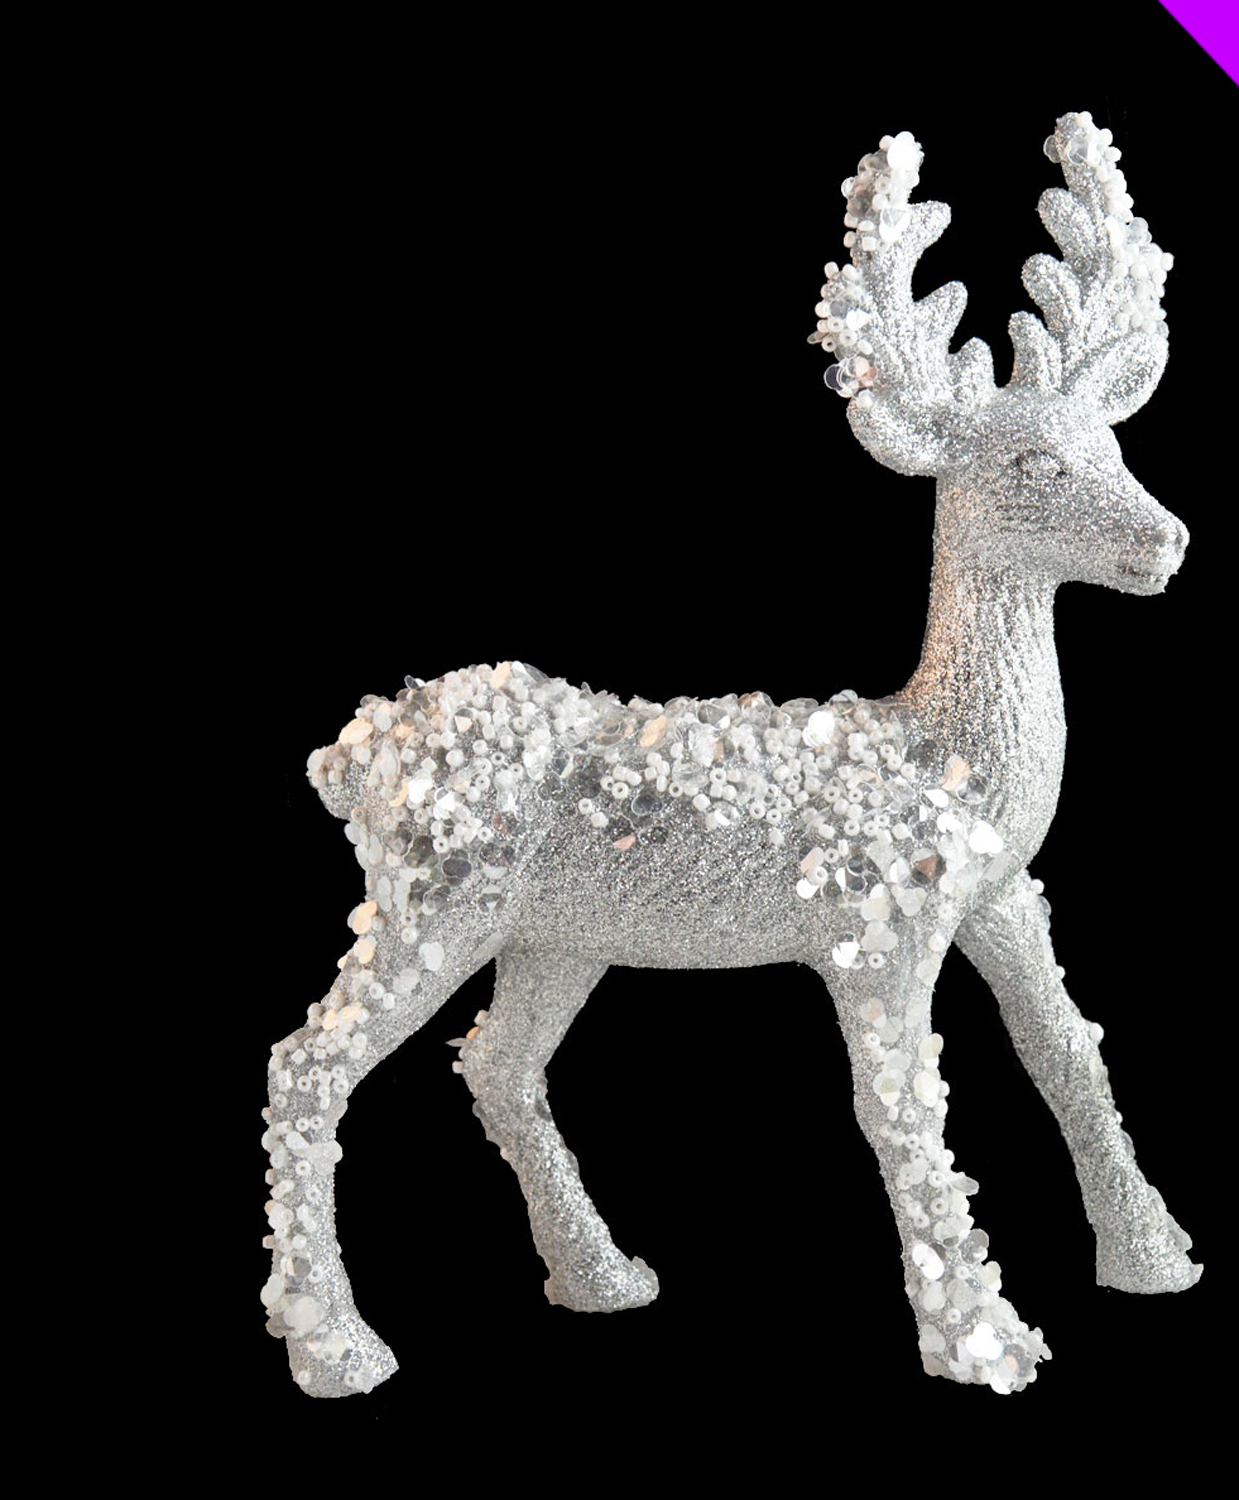 CHEAP Silver 3D Glitter Standing Reindeer Christmas Decorations 21cm BARGAIN